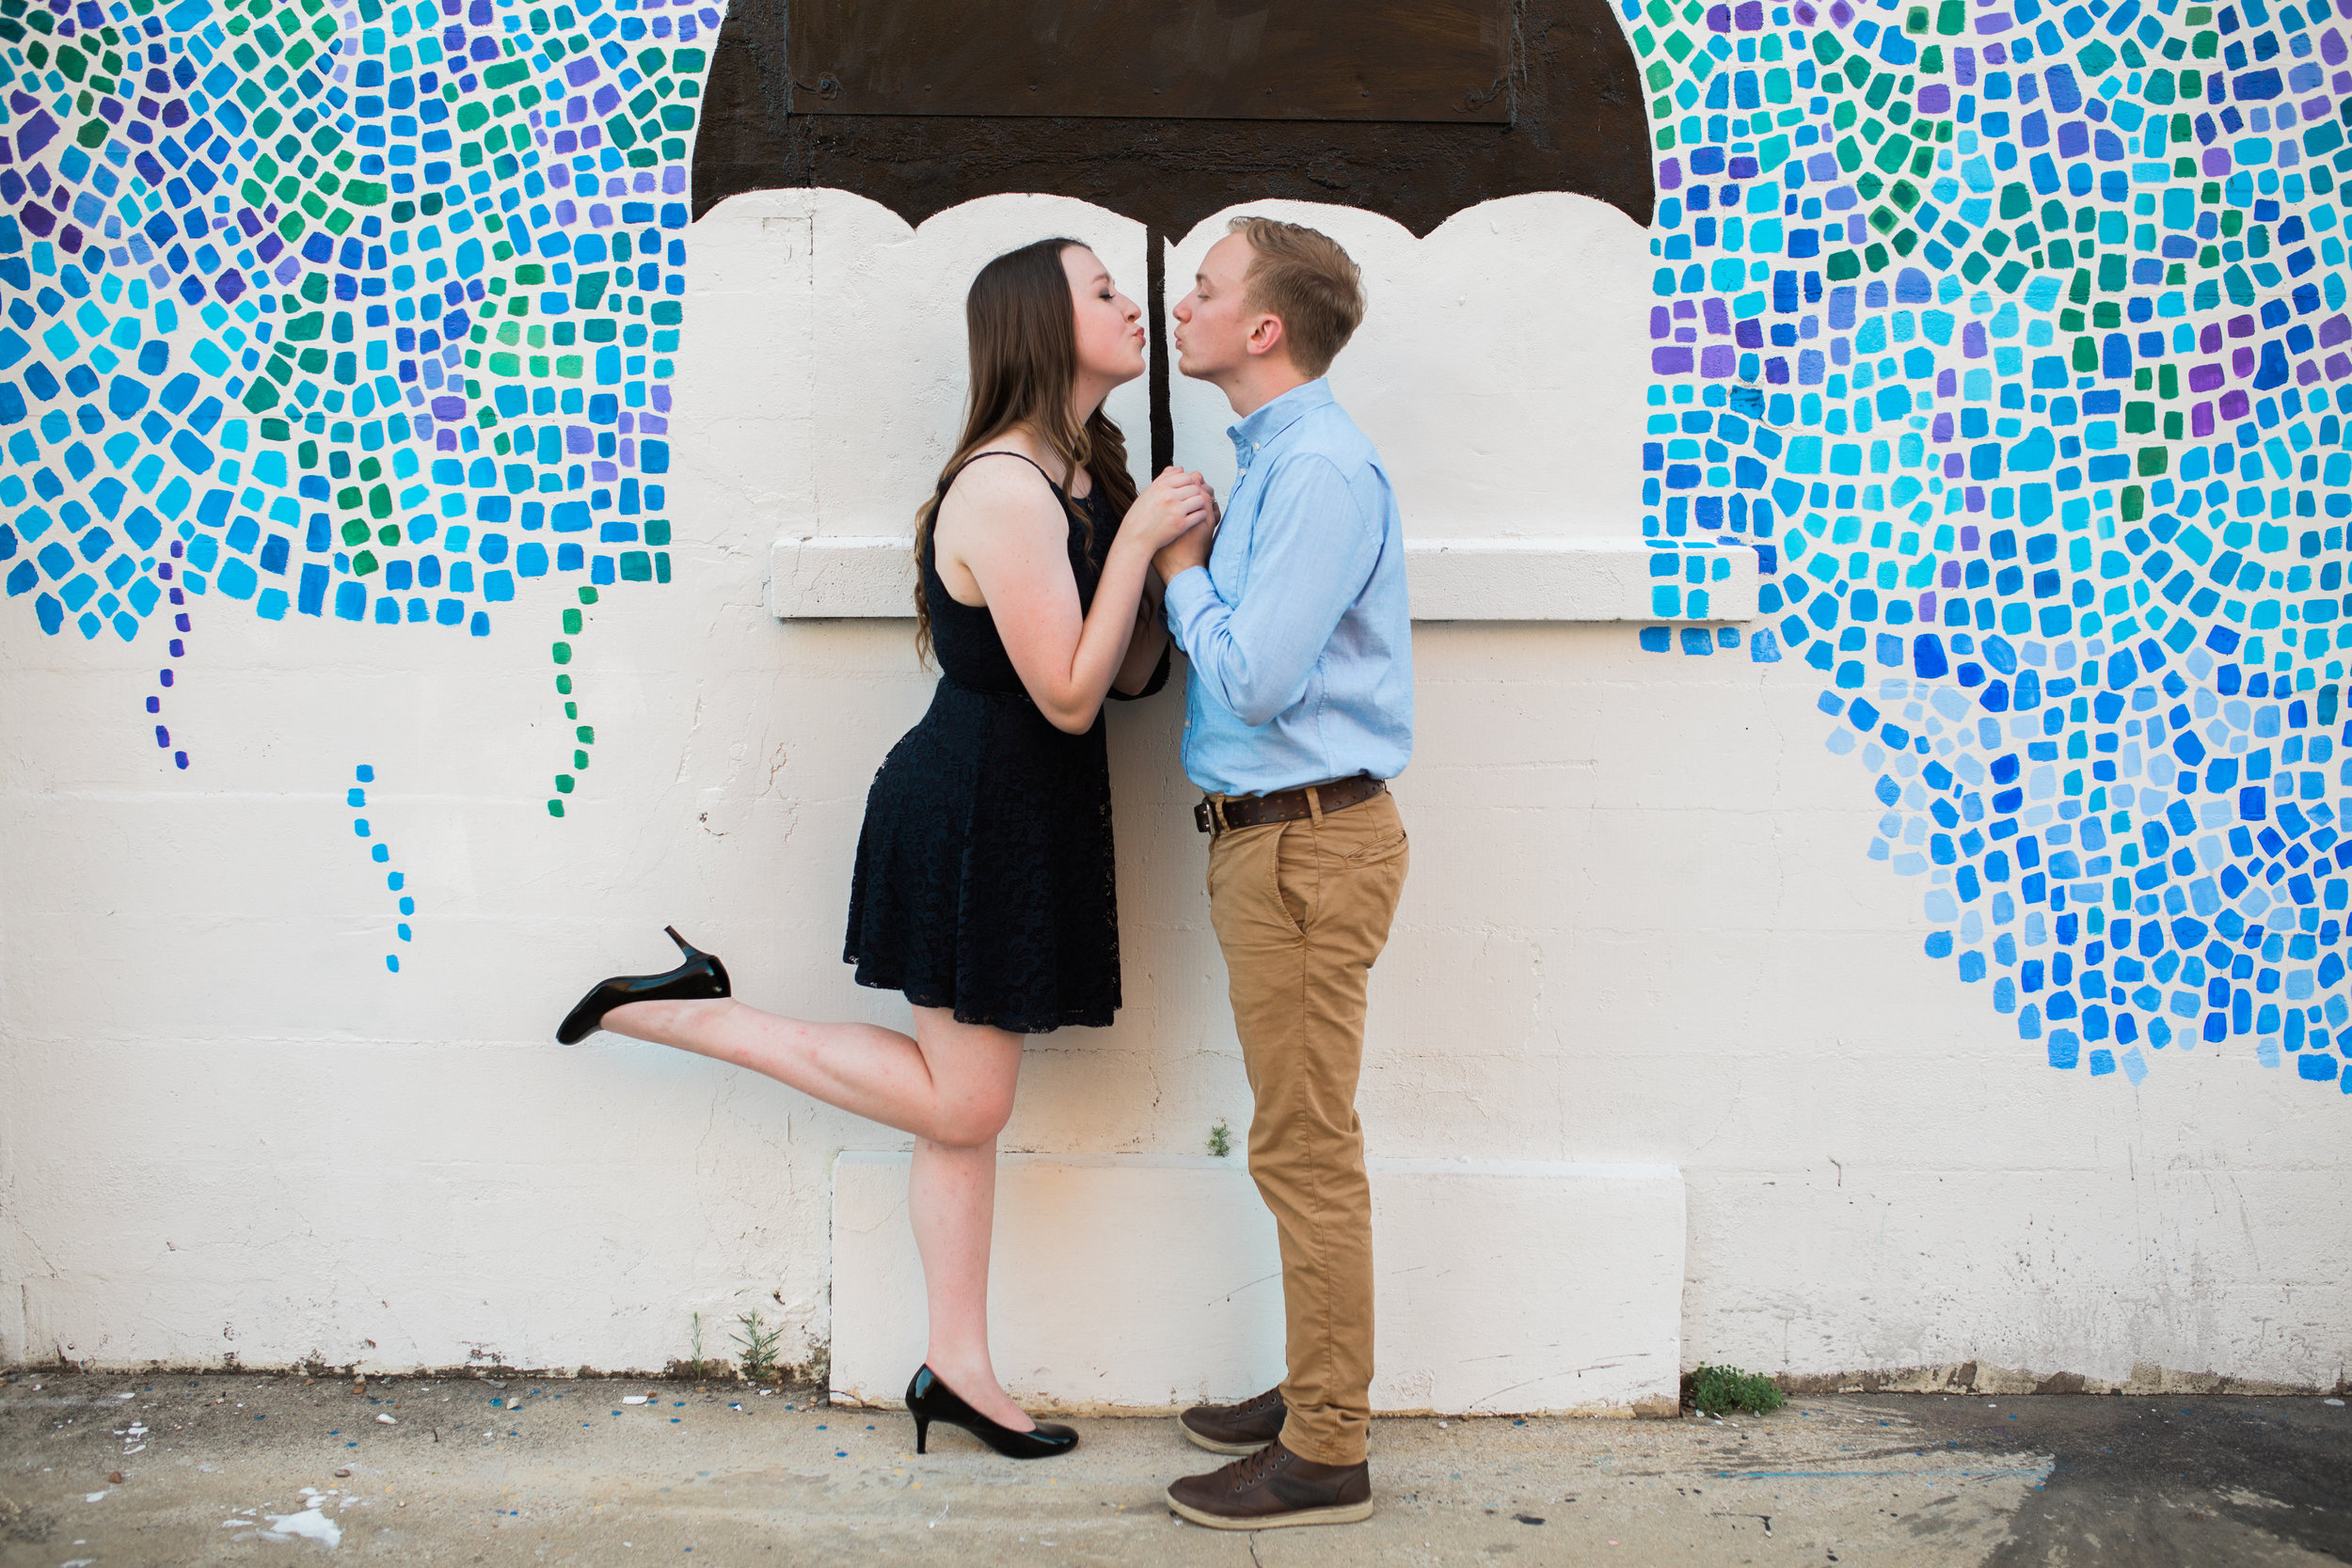 Morgan_Green_Baylen_Harris_Engagements_Monroe_Louisiana_Madeline_Grace_Photography